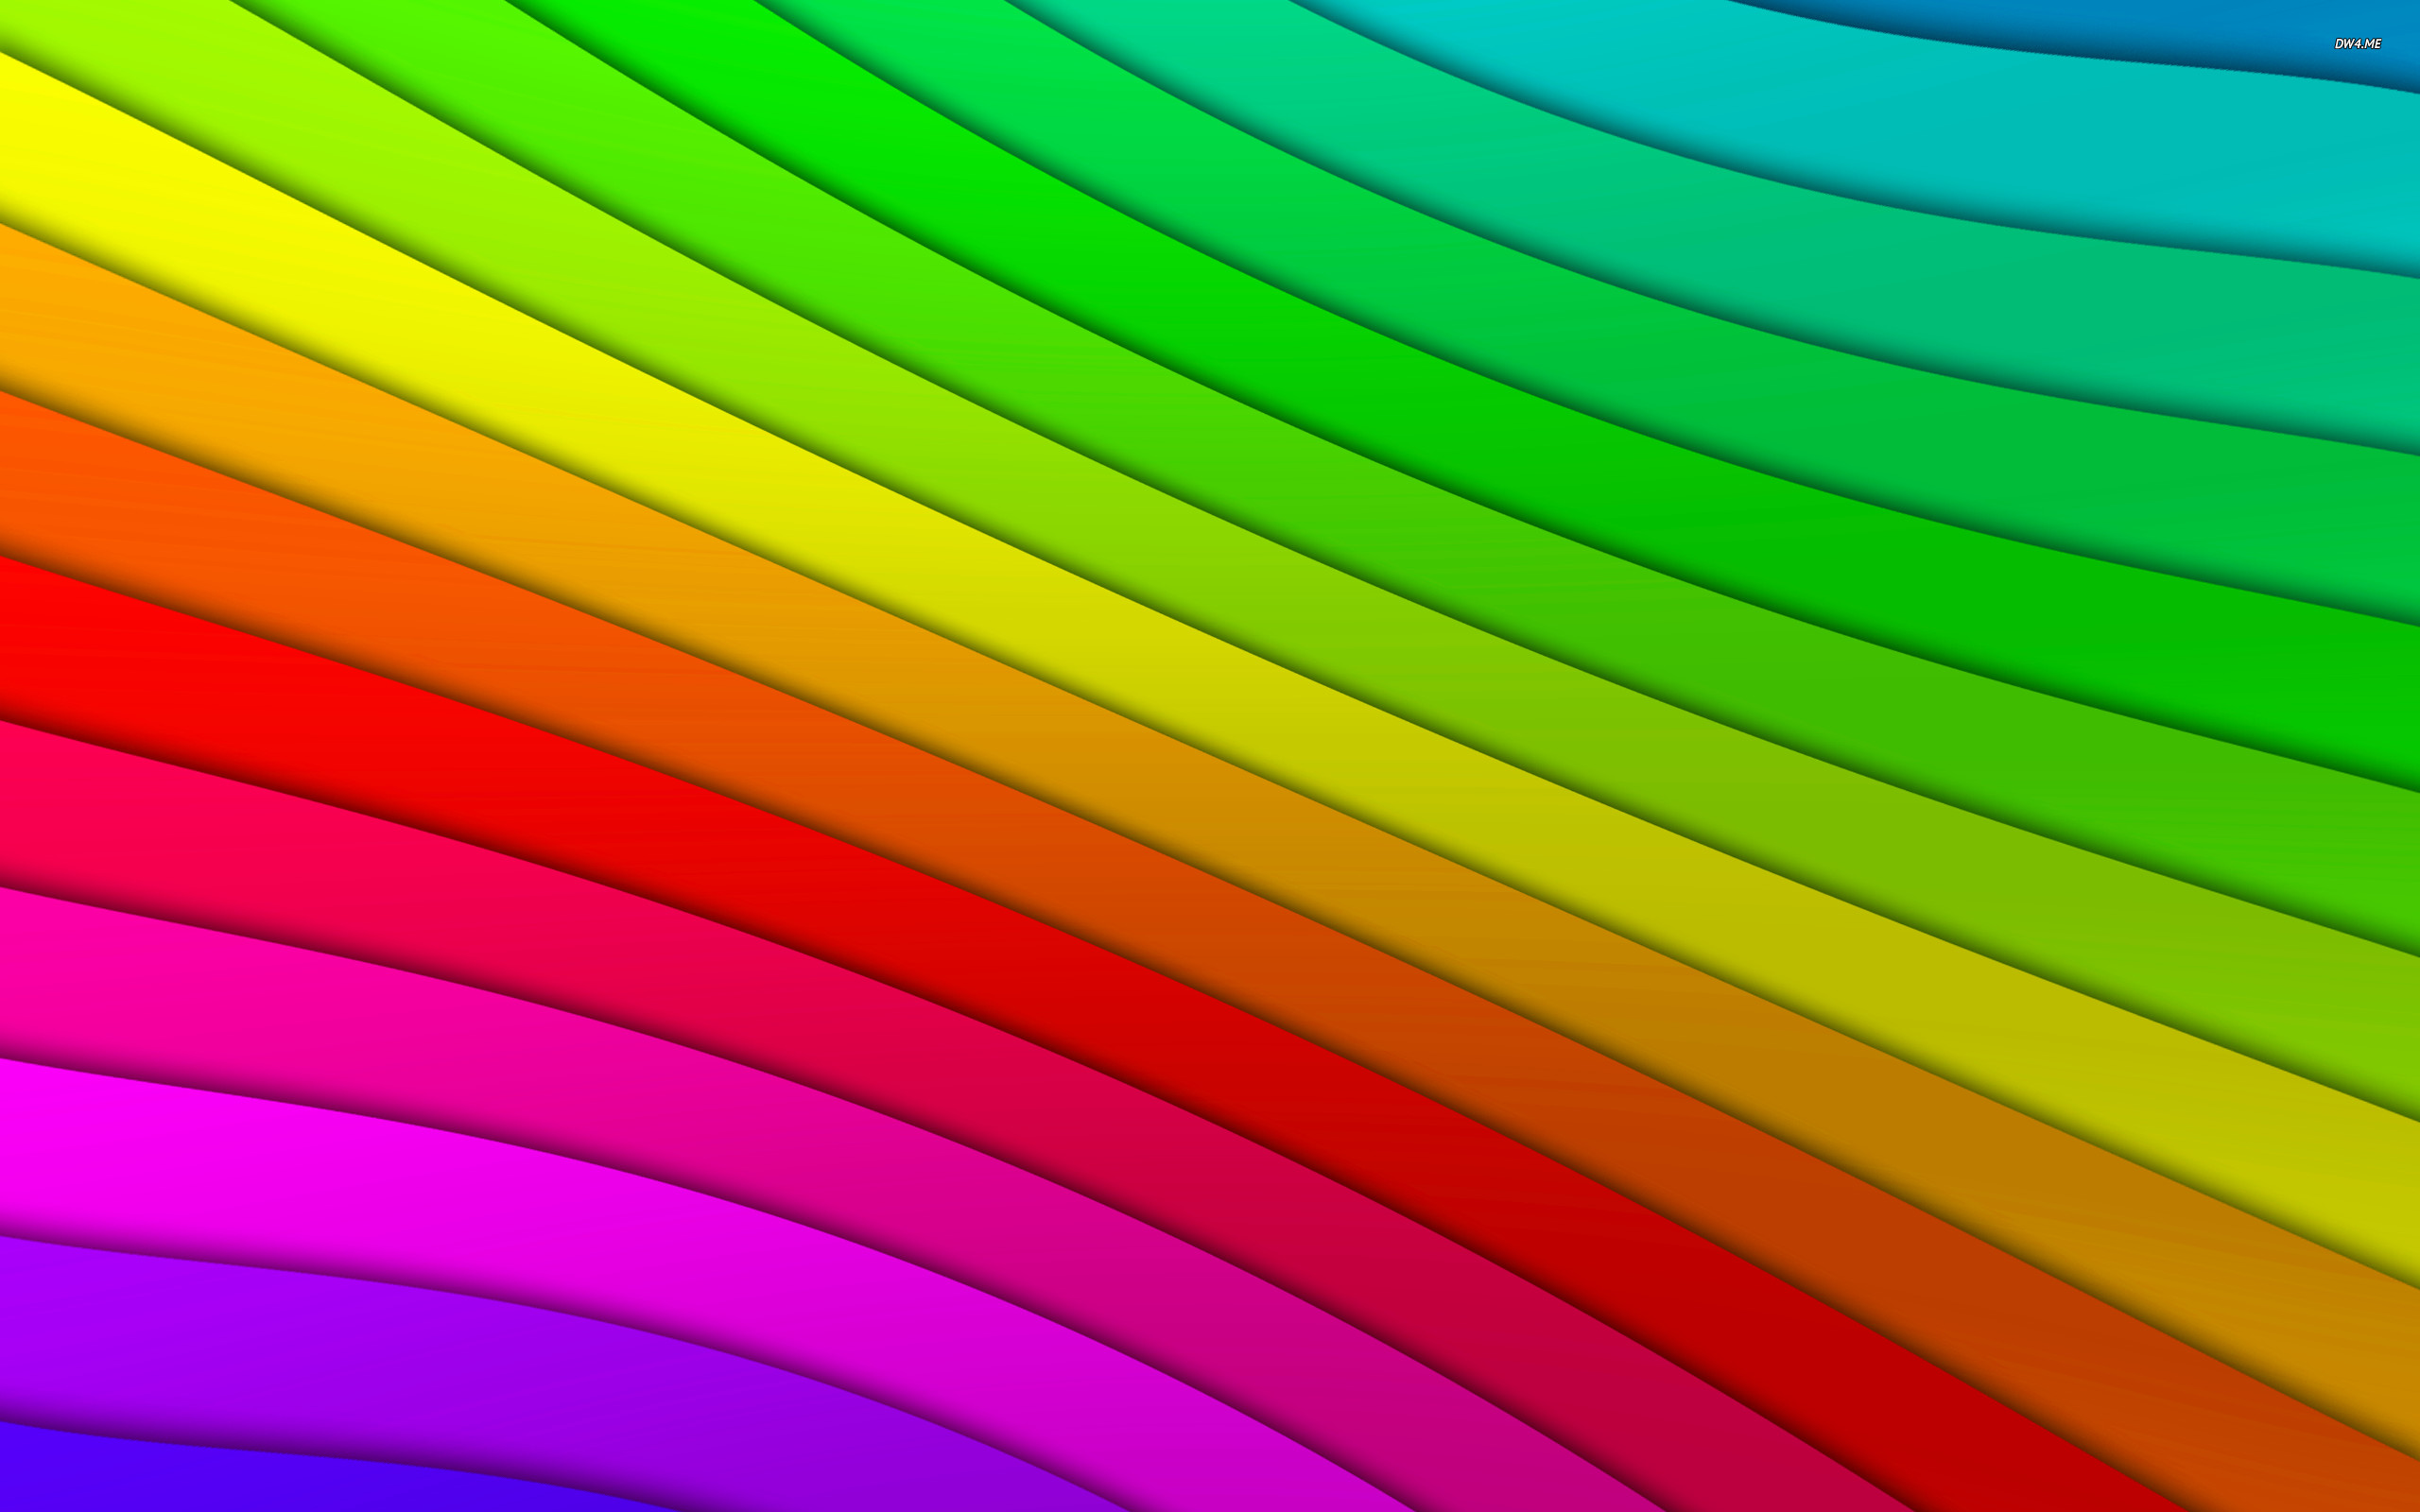 2560x1600 Colored curved lines wallpaper